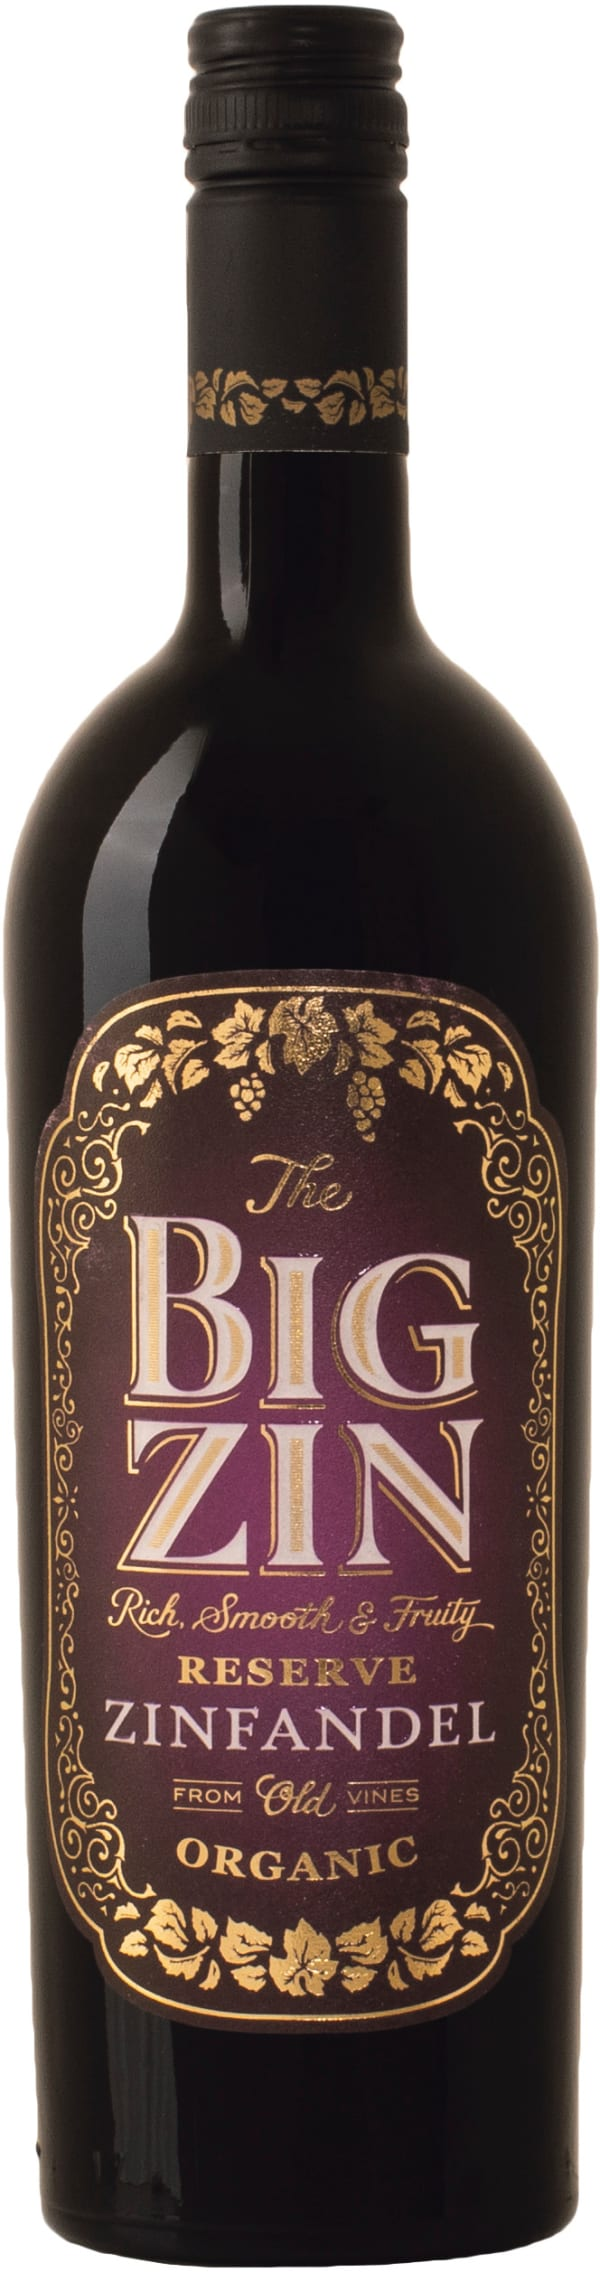 The Big Zin Zinfandel Organic 2018